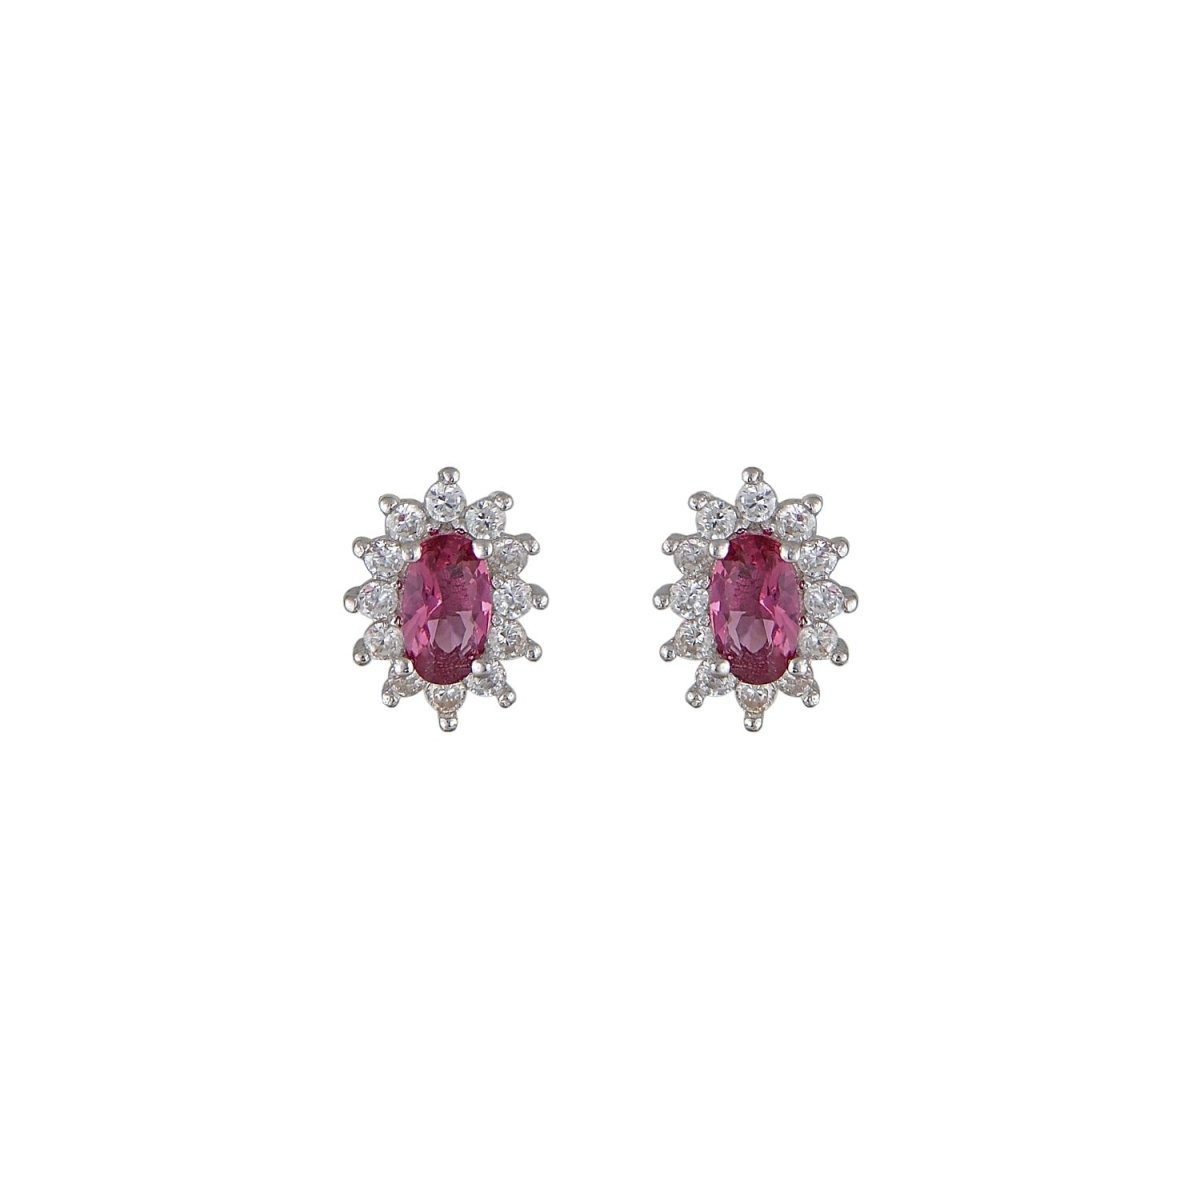 Earrings ER73498 Red Rosette with Platinum Silver - Goldy Jewelry Store